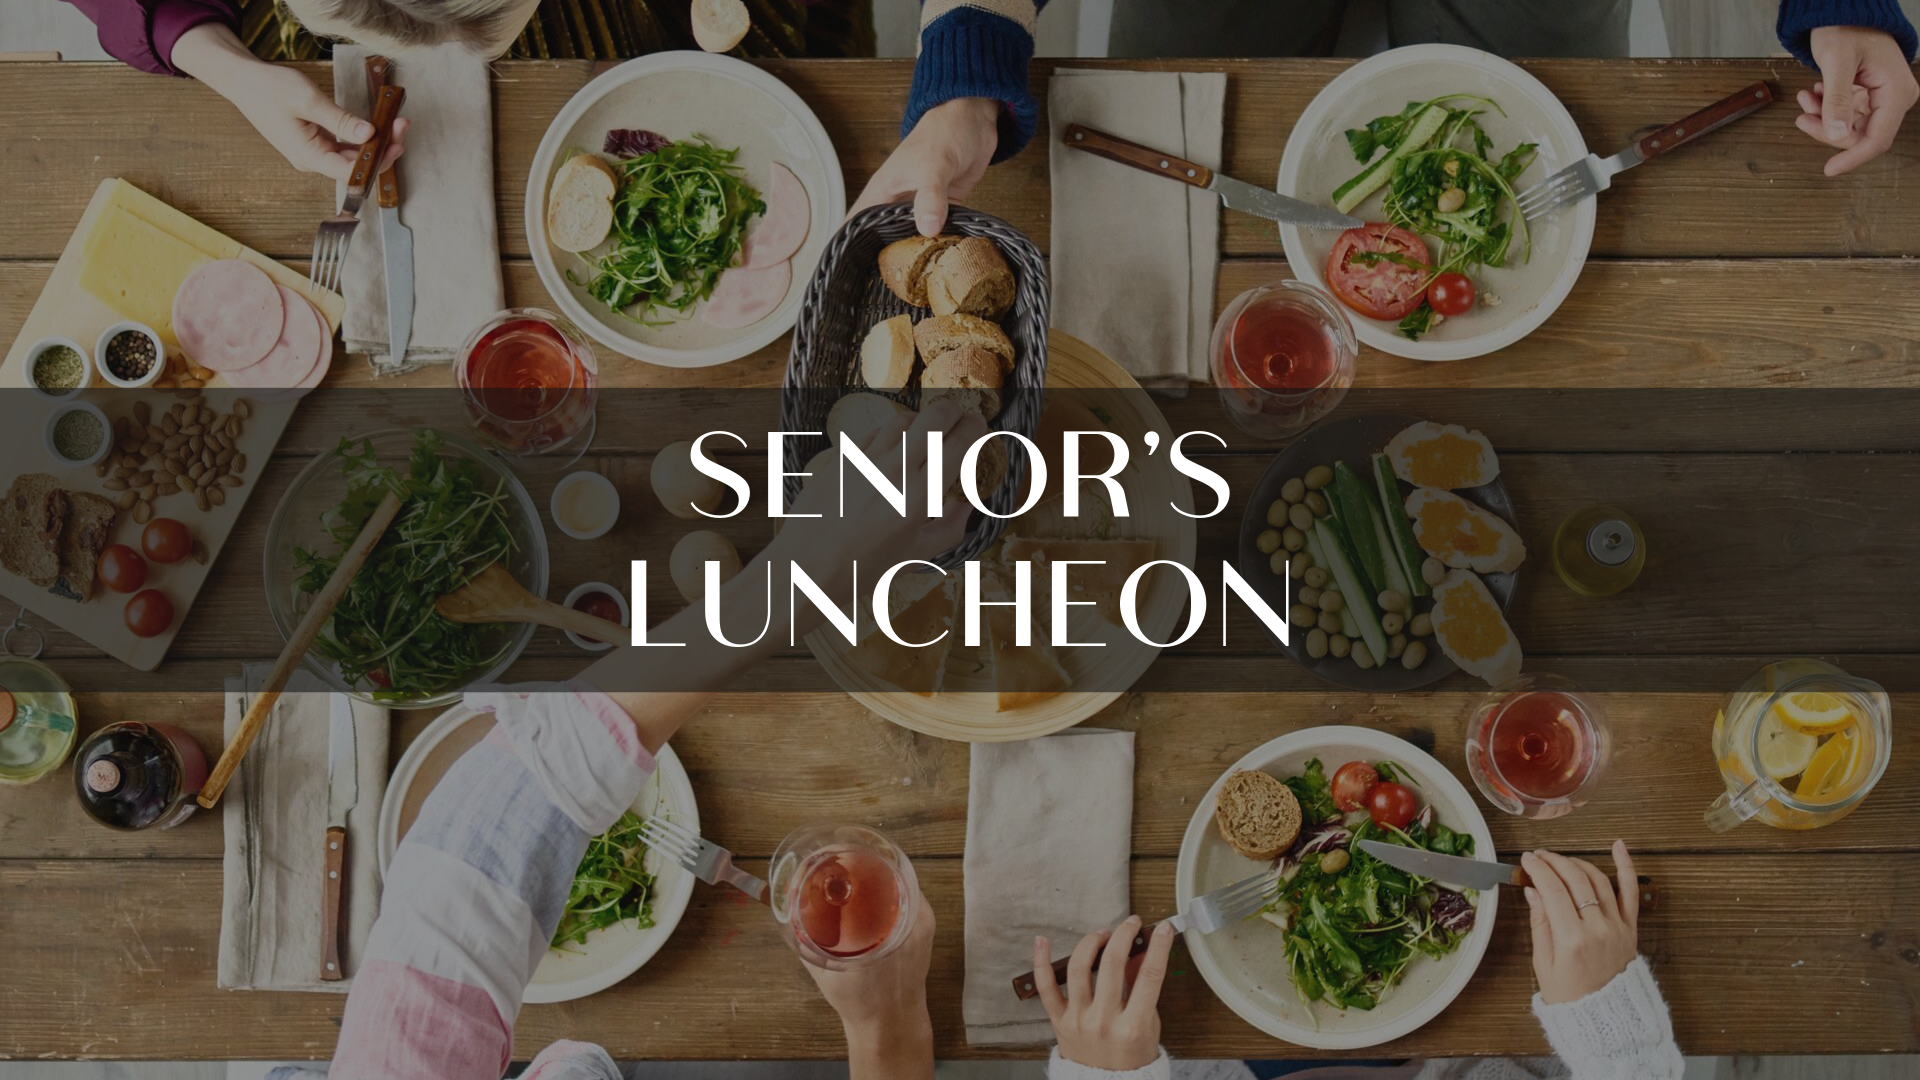 Copy of SENIOR'S LUNCHEON.png